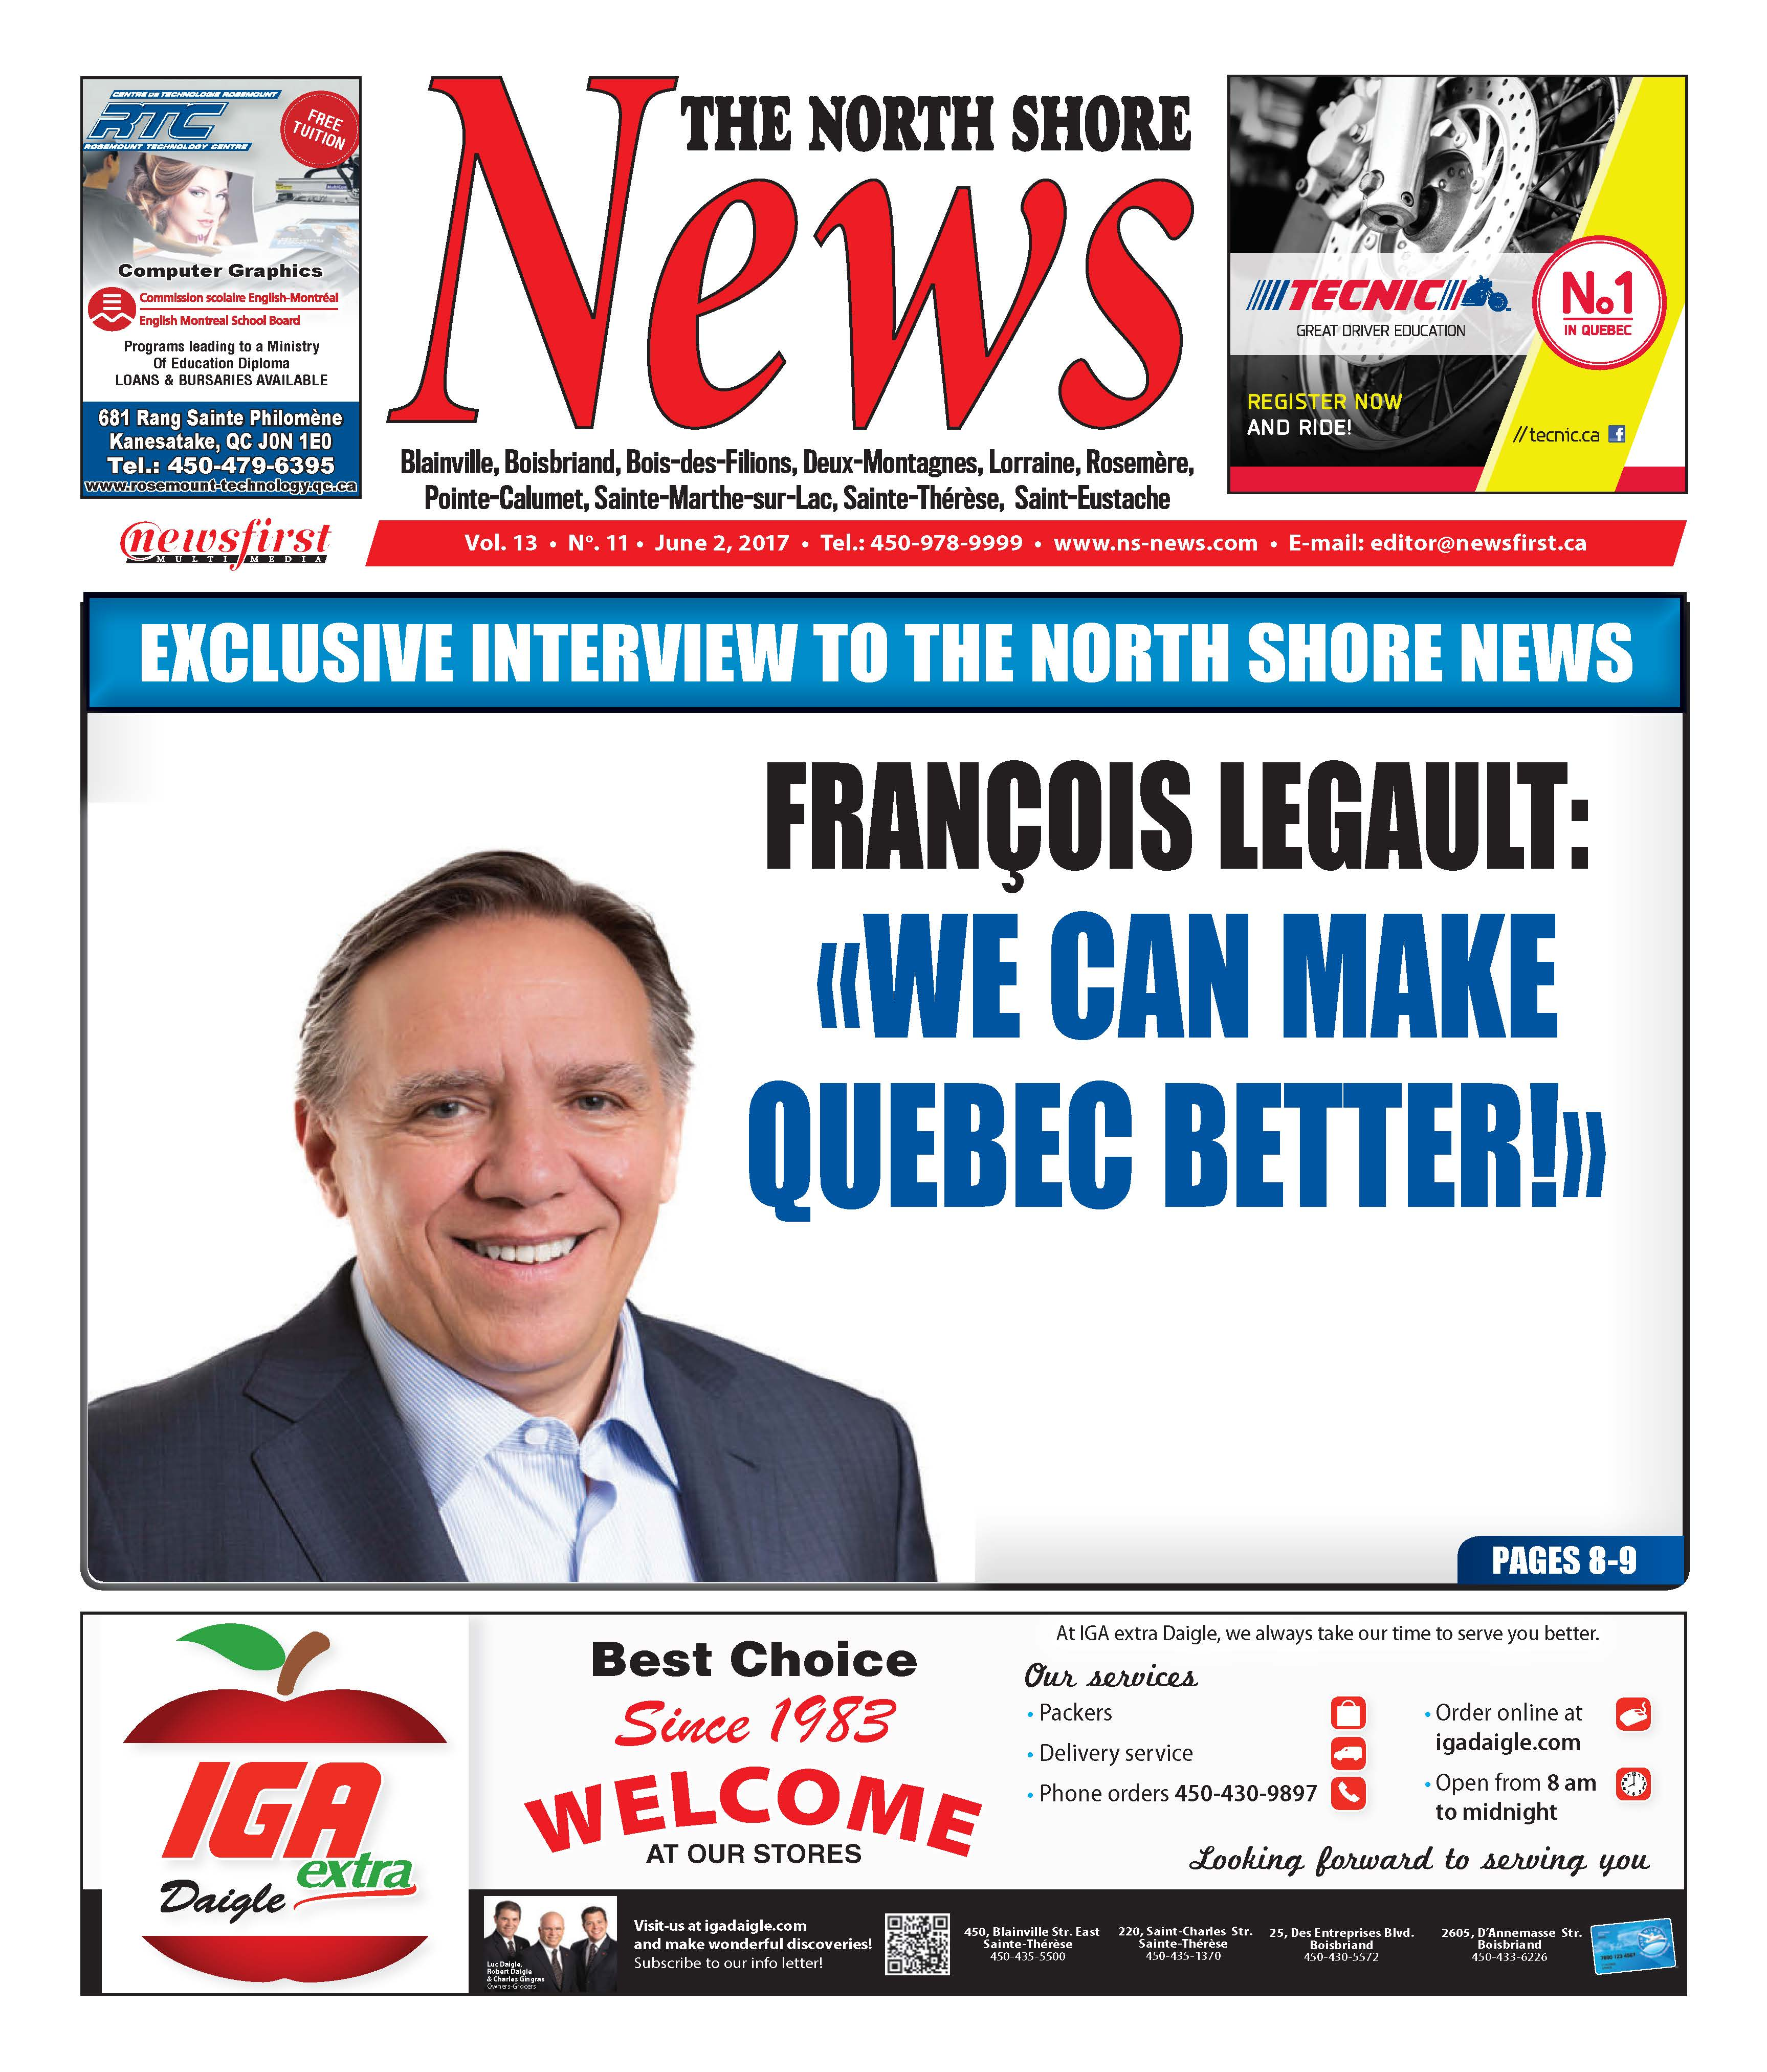 Front page image of the North Shore News Volume 13-11